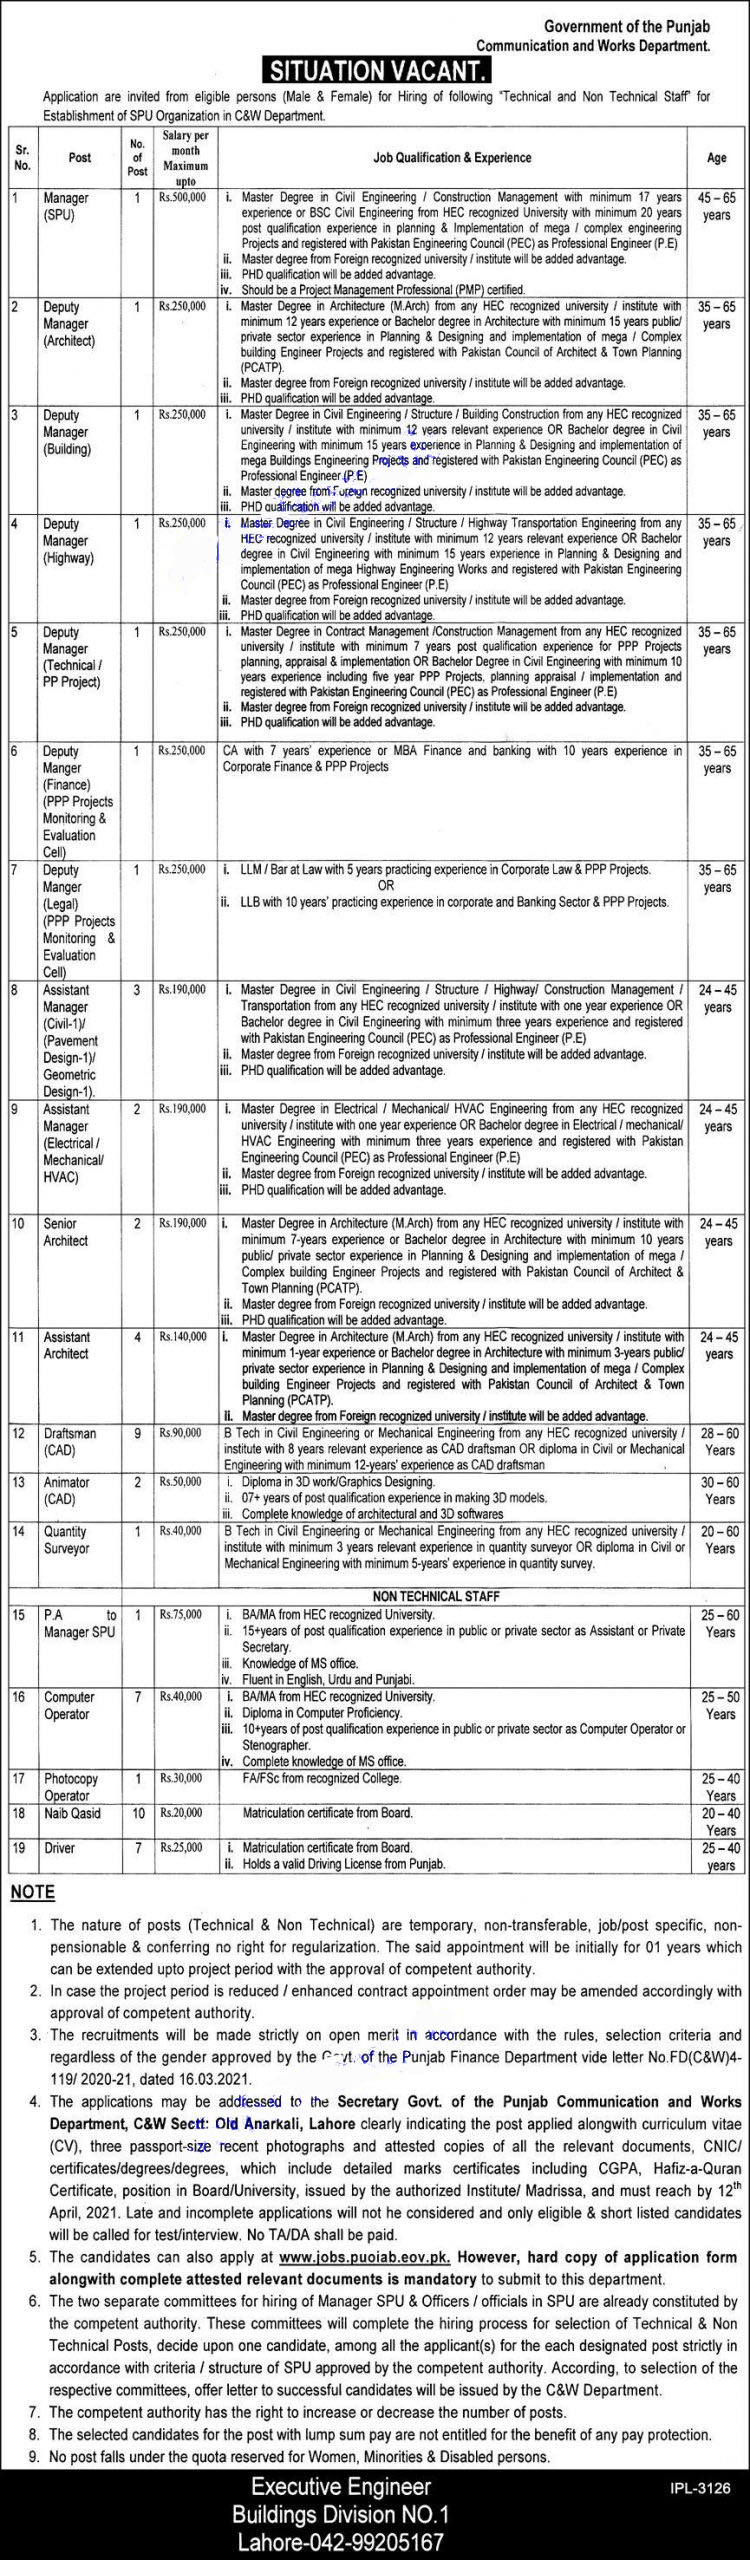 Latest Punjab Government Jobs 2021 In Communication and Works Department (C&W)